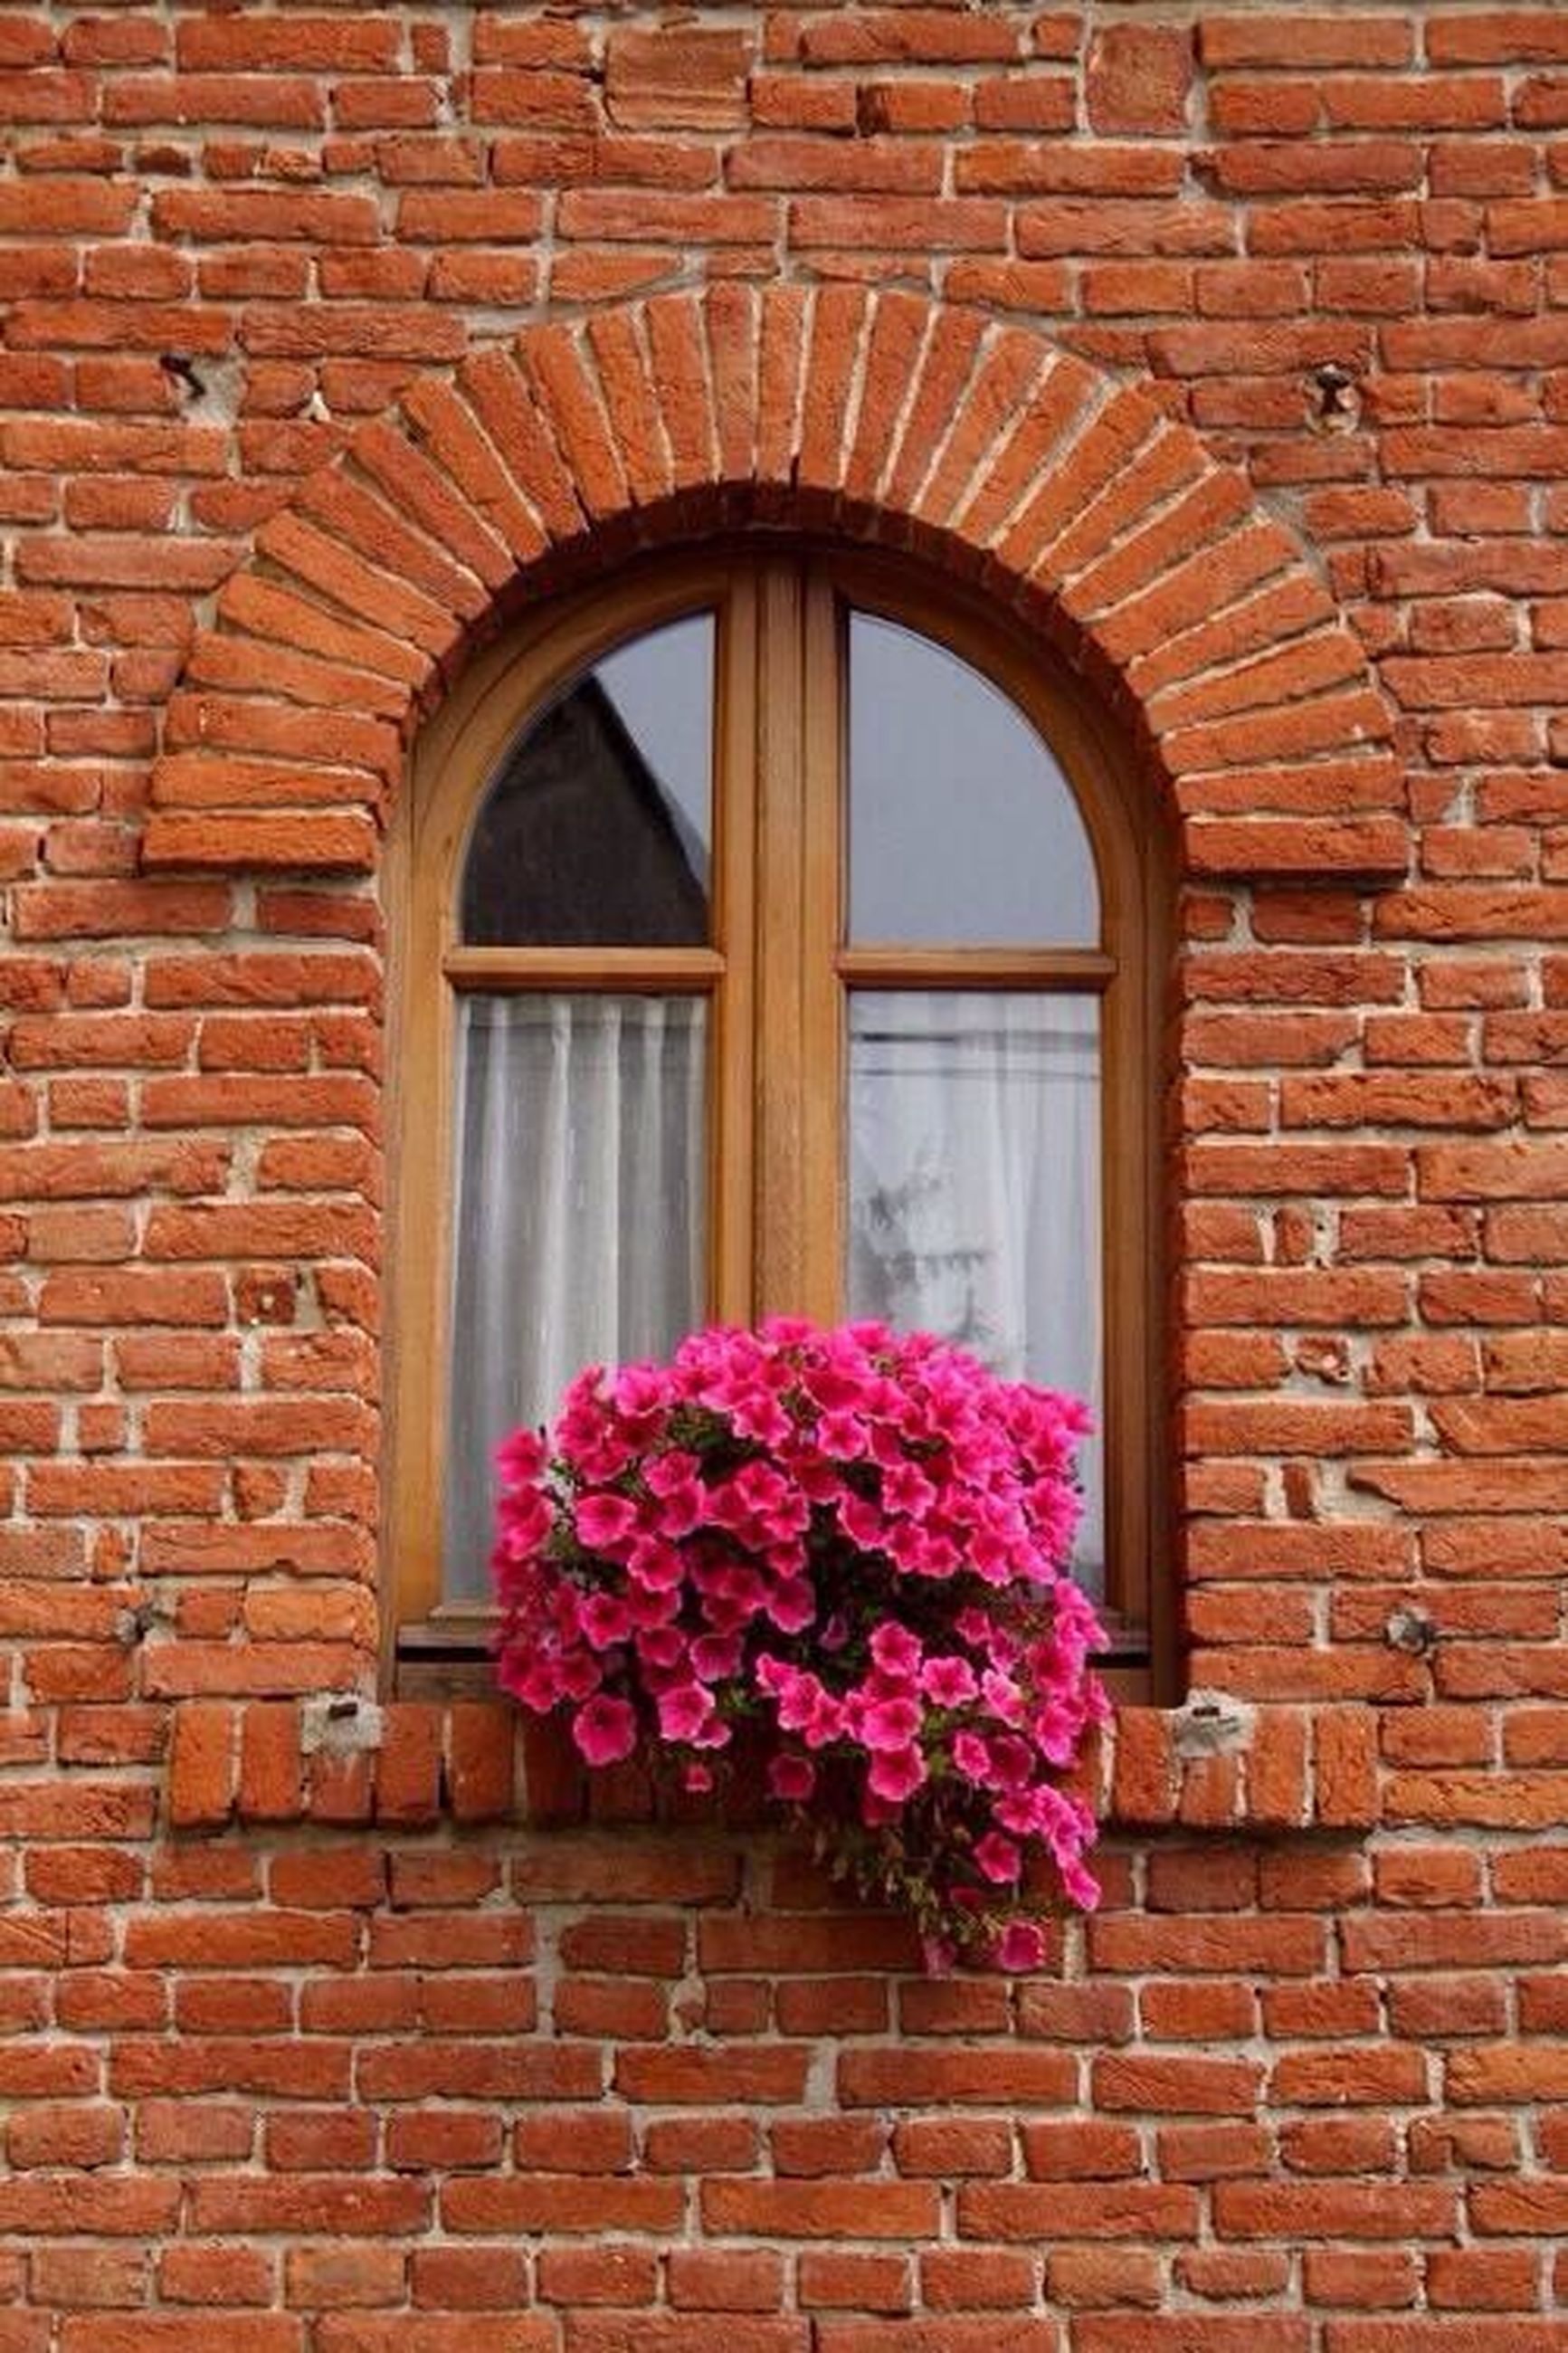 flower, architecture, built structure, building exterior, brick wall, window, pink color, red, stone wall, fragility, wall - building feature, house, freshness, plant, arch, growth, day, petal, outdoors, potted plant